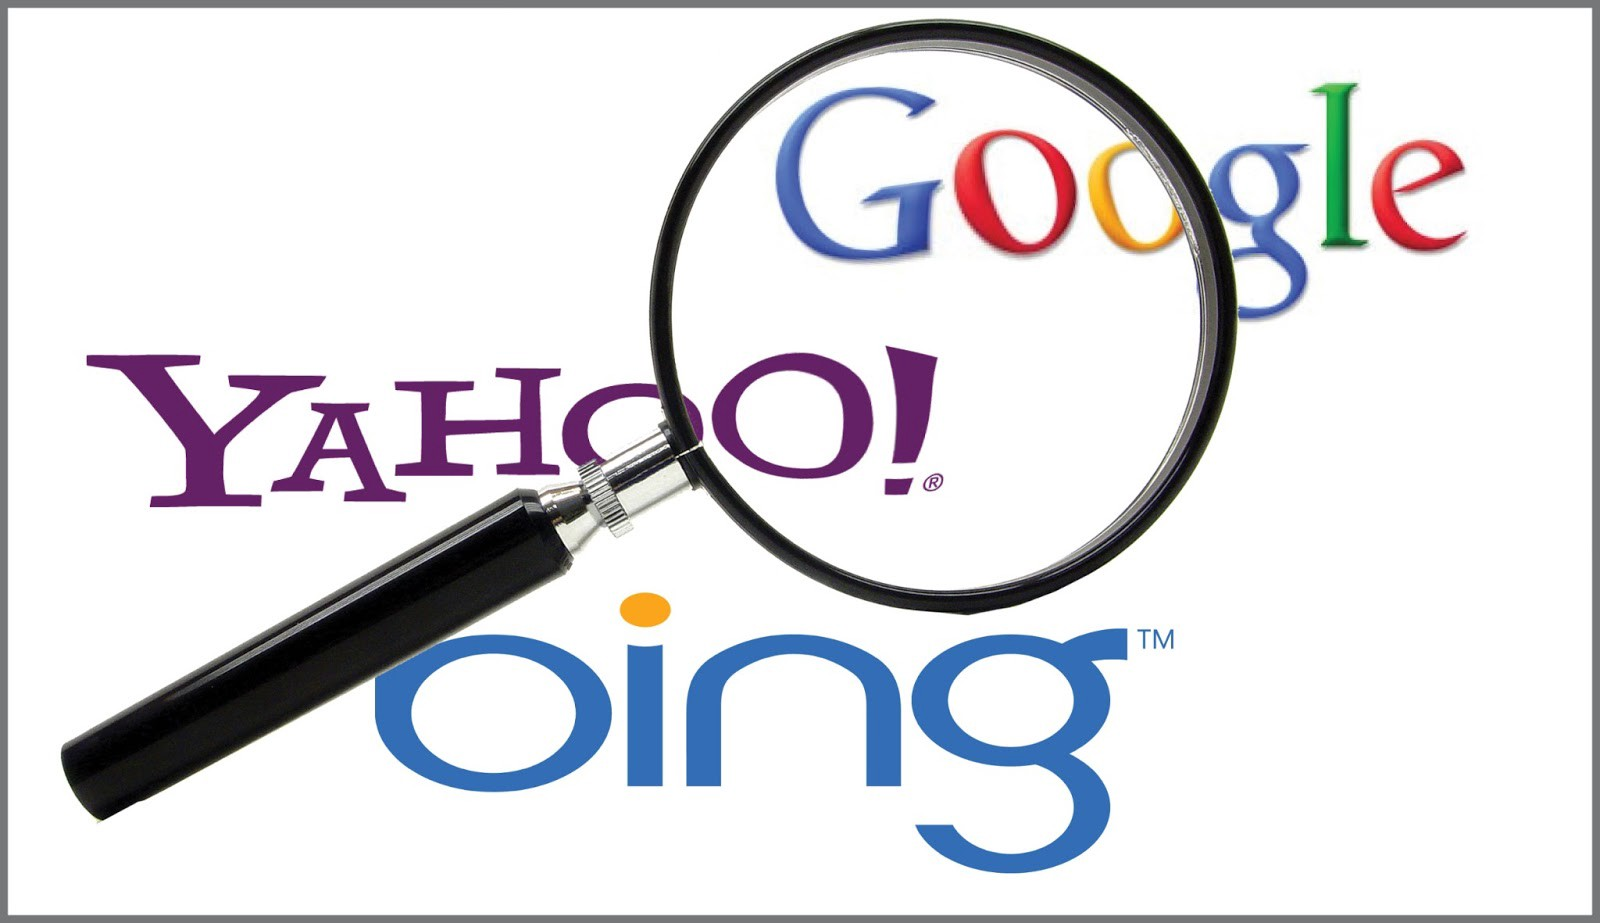 Machine Learning in Search Engine Advertising - Towards Data